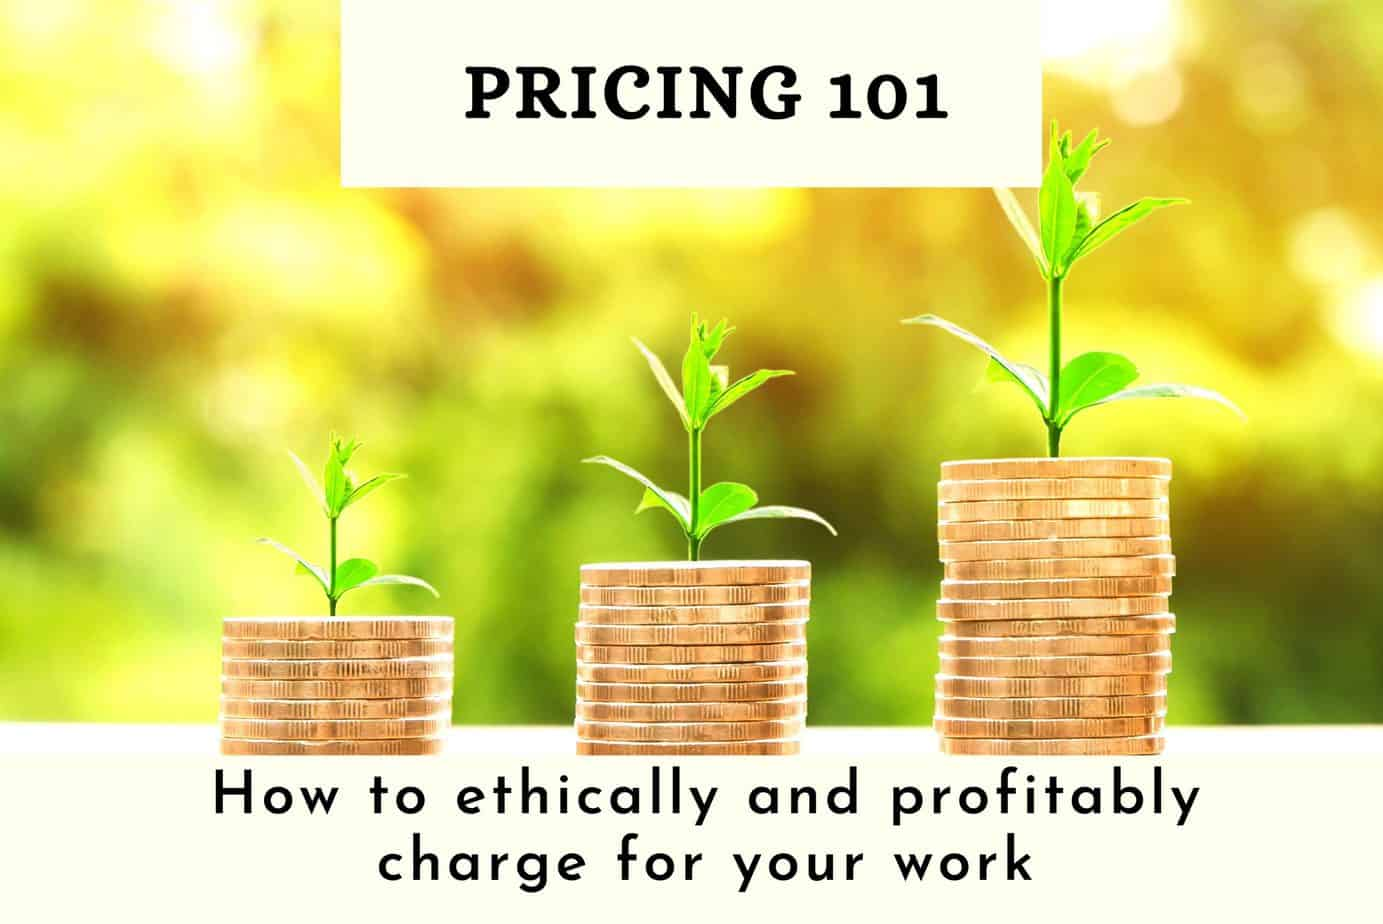 Pricing 101 How to ethically and profitably charge for your work